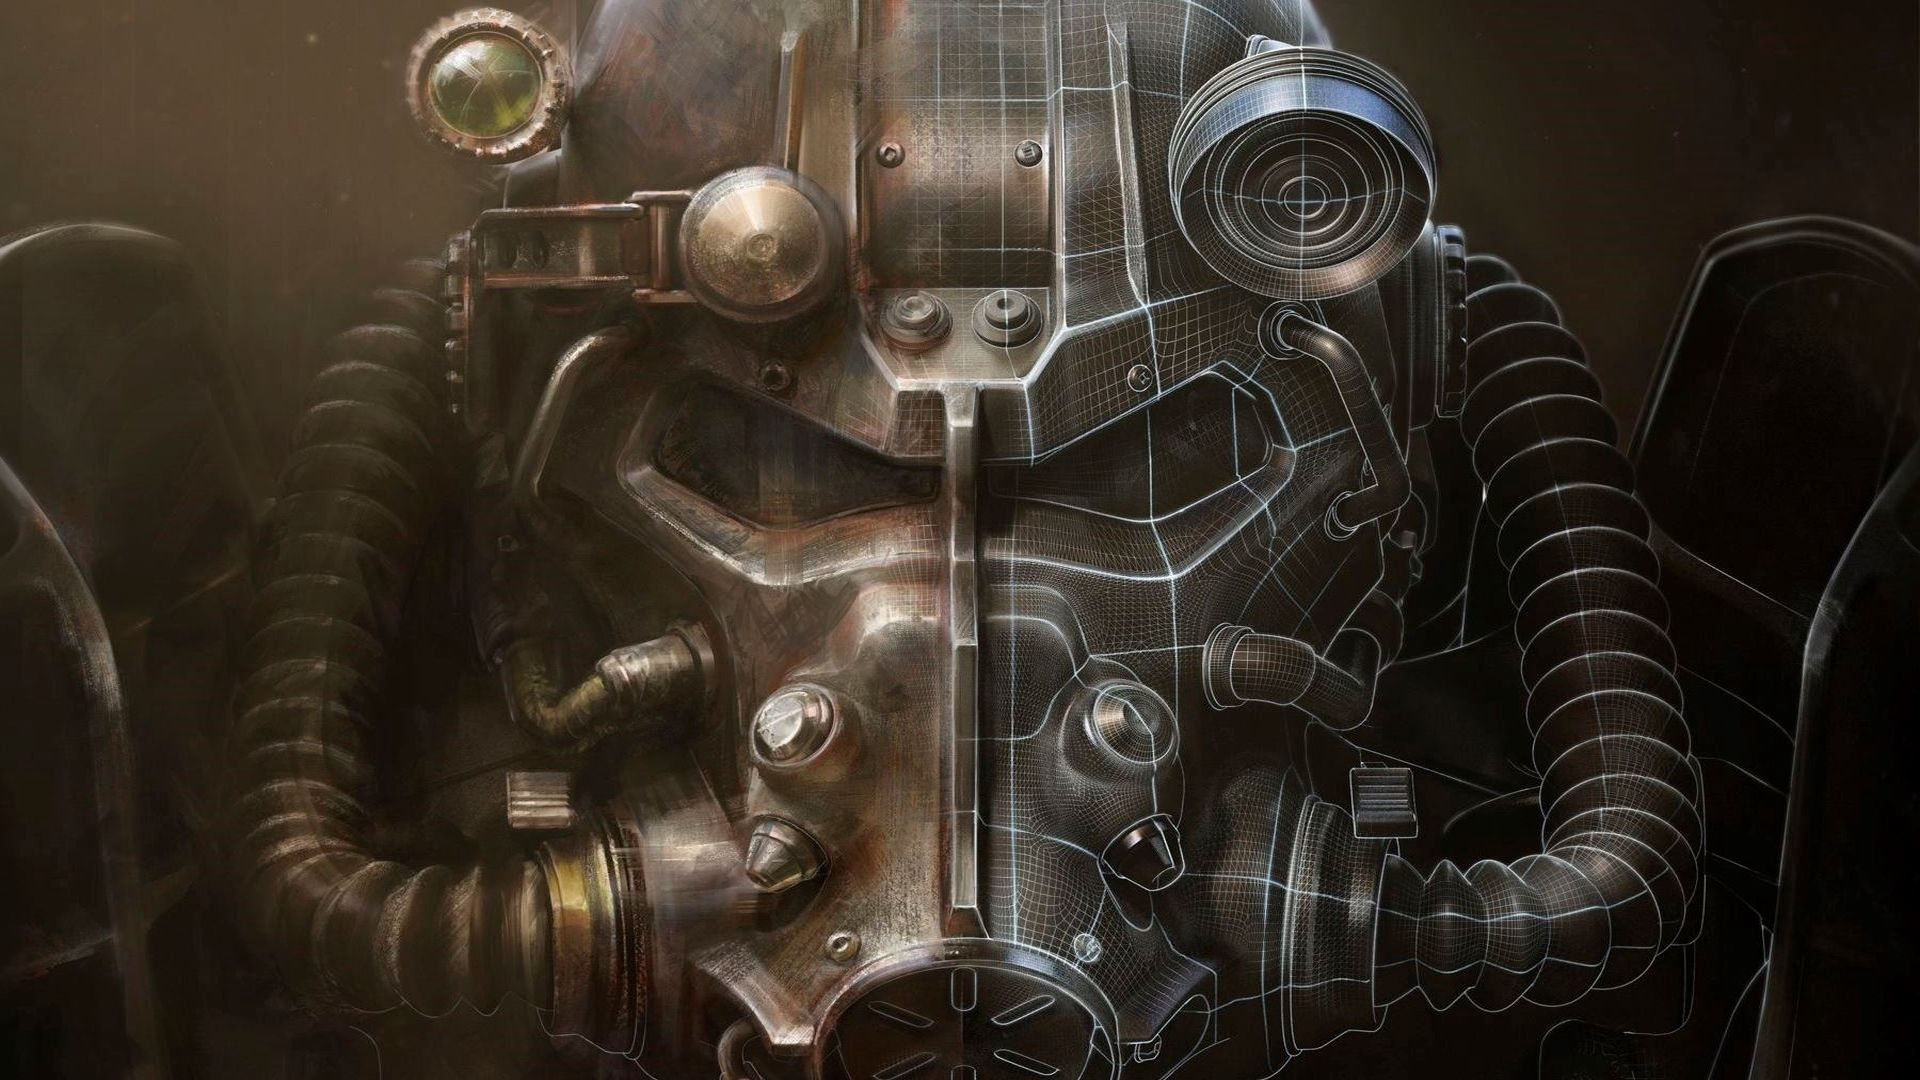 1920x1080 Wallpaper Fallout 4 Bethesda Softworks Armor Fallout